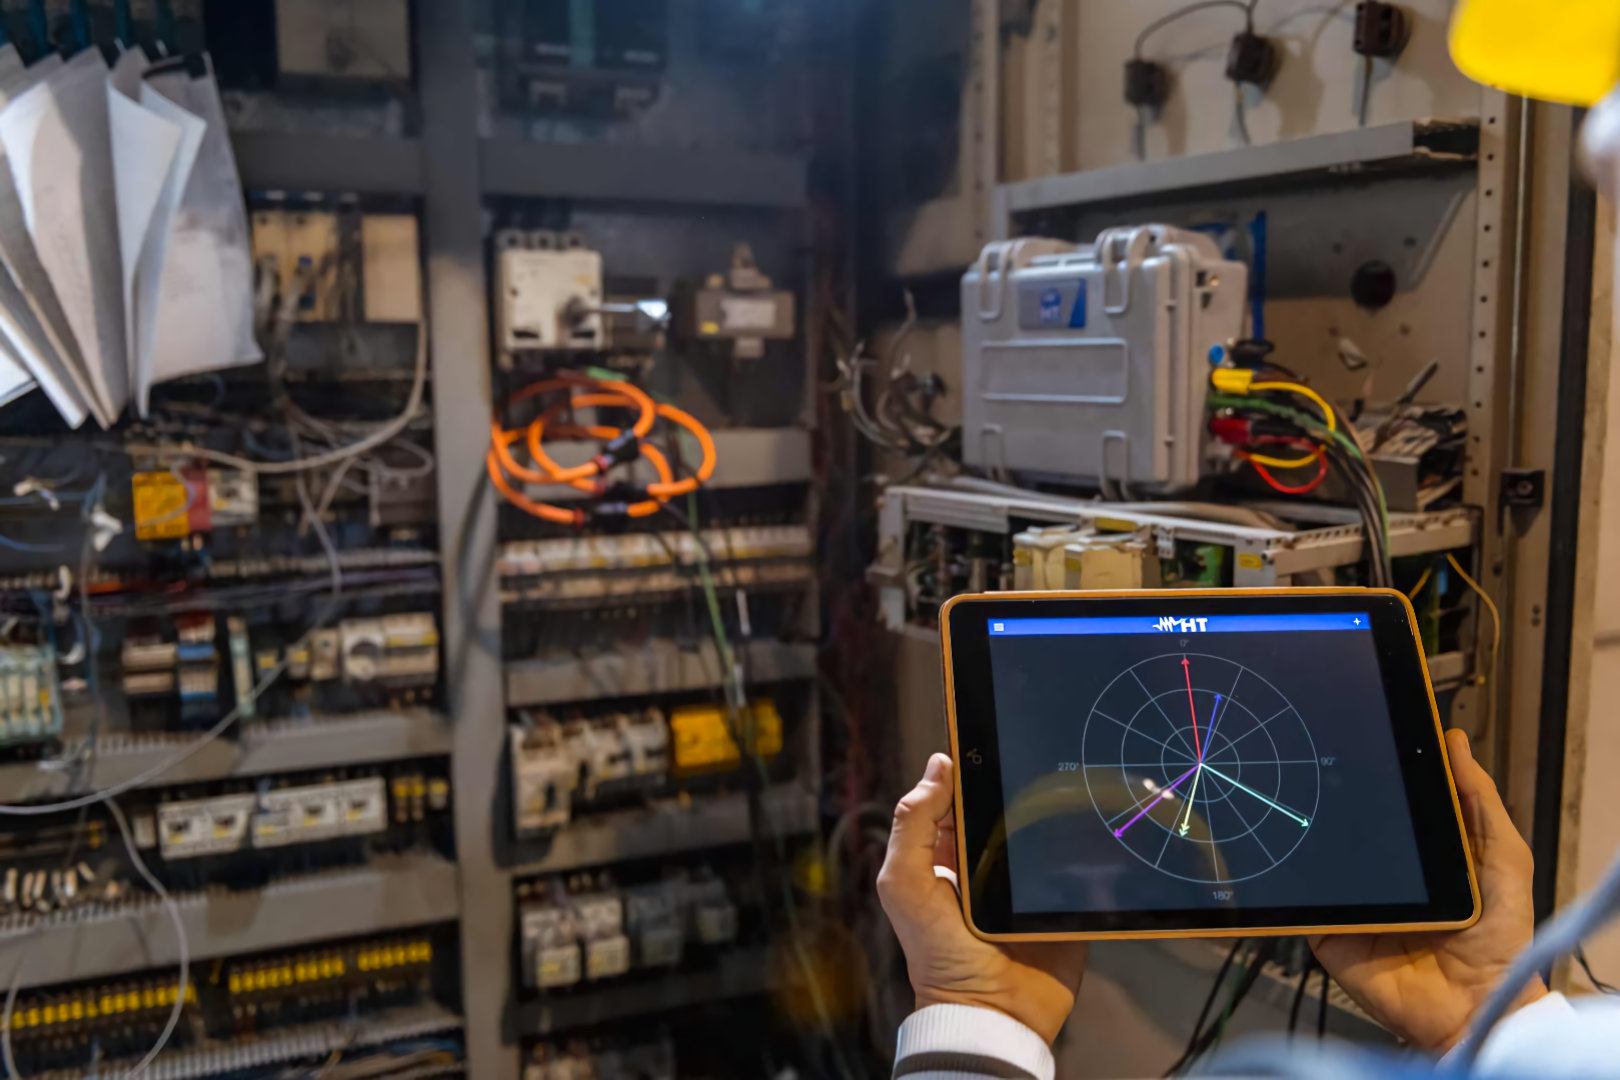 electrician using power analysis equipment and software on ipad